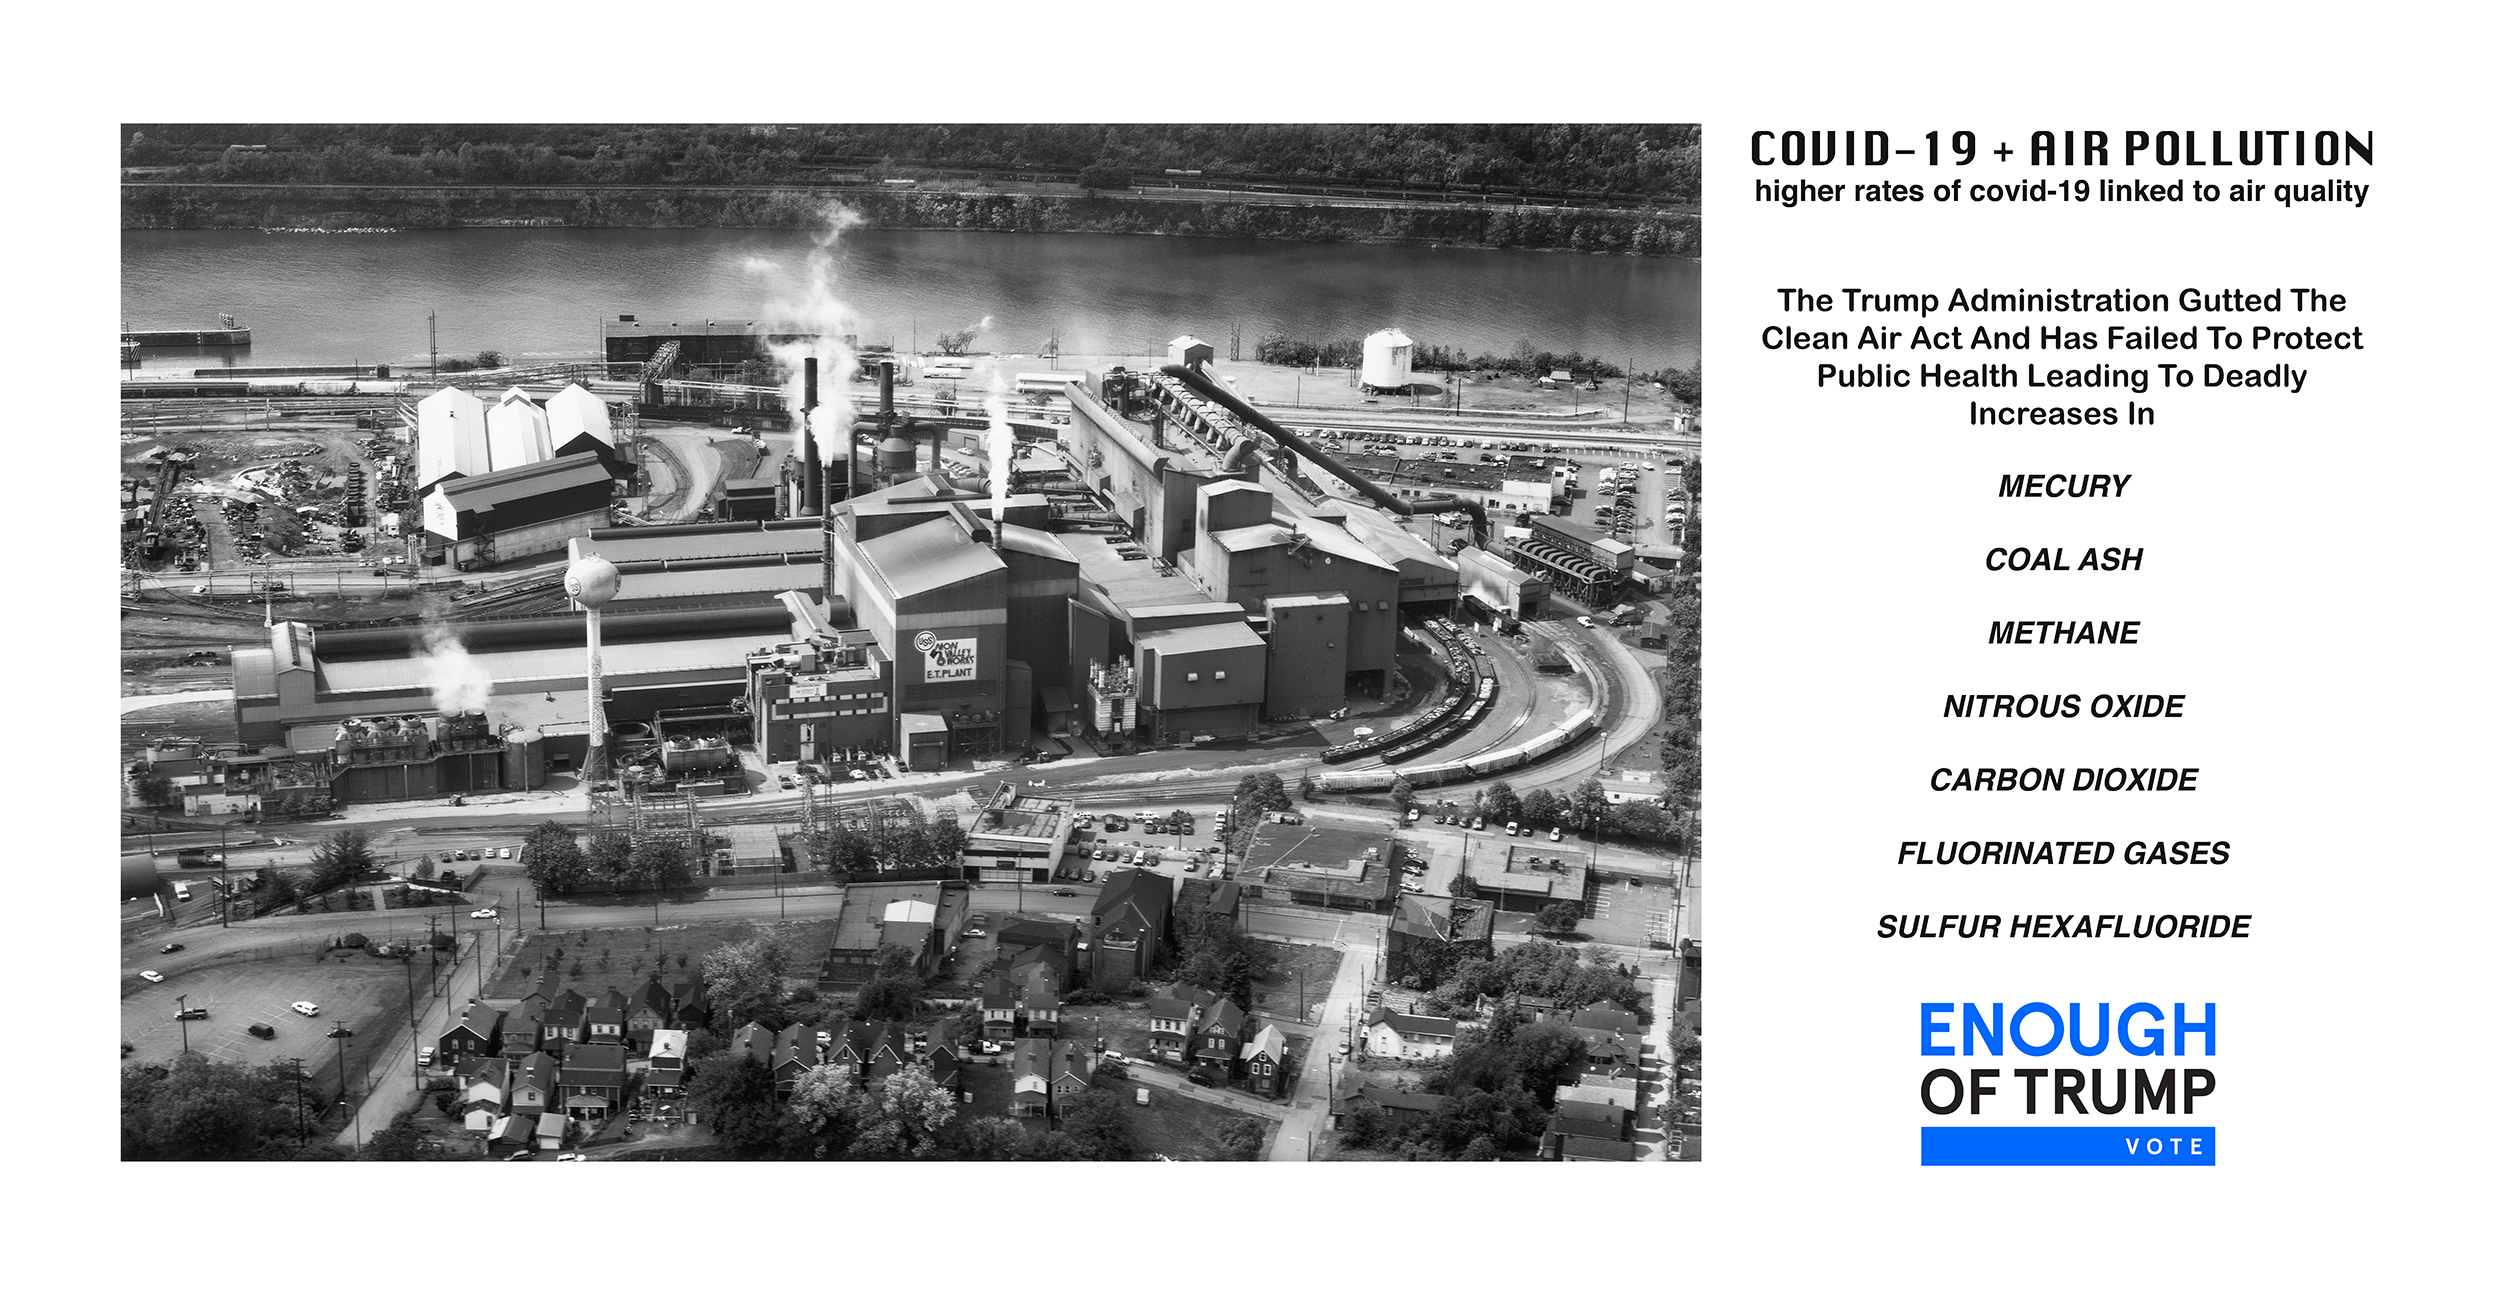 Image of a factory, next to the following text: COVID-19 + Air Pollution: Higher rates of covid-19 linked to air quality. The Trump Administration Gutted The Clearn Air Act And Has Failed To Protect Public Health Leading to Deadly Increases In: Mercury, coal ash, methand, nitrous oxide, carbon dioxide, fluorinated gases, sulfure hexafluoride. ENOUGH OF TRUMP - VOTE.